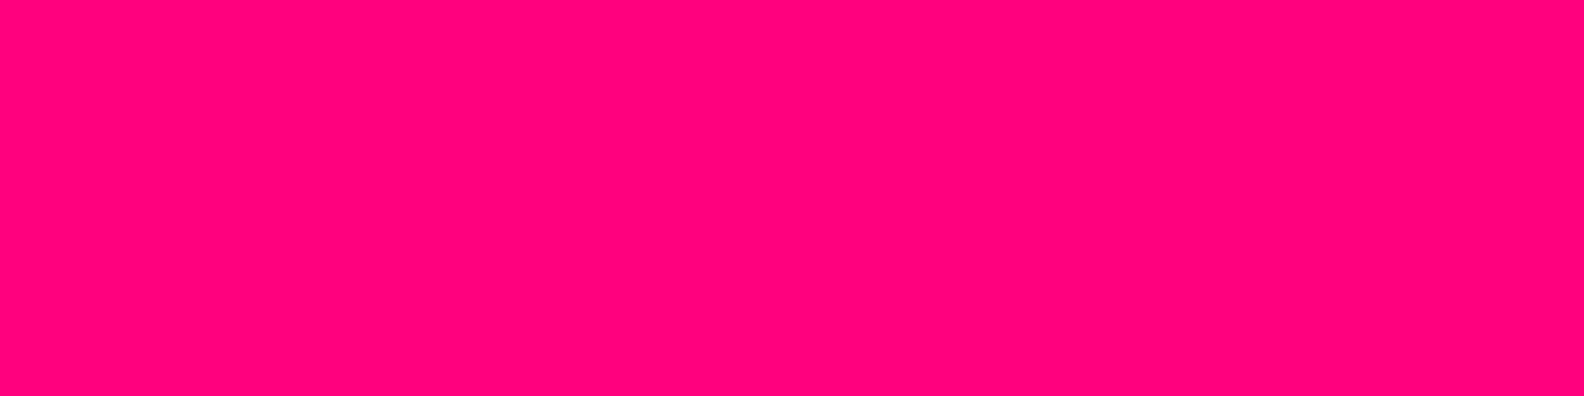 1584x396 Bright Pink Solid Color Background